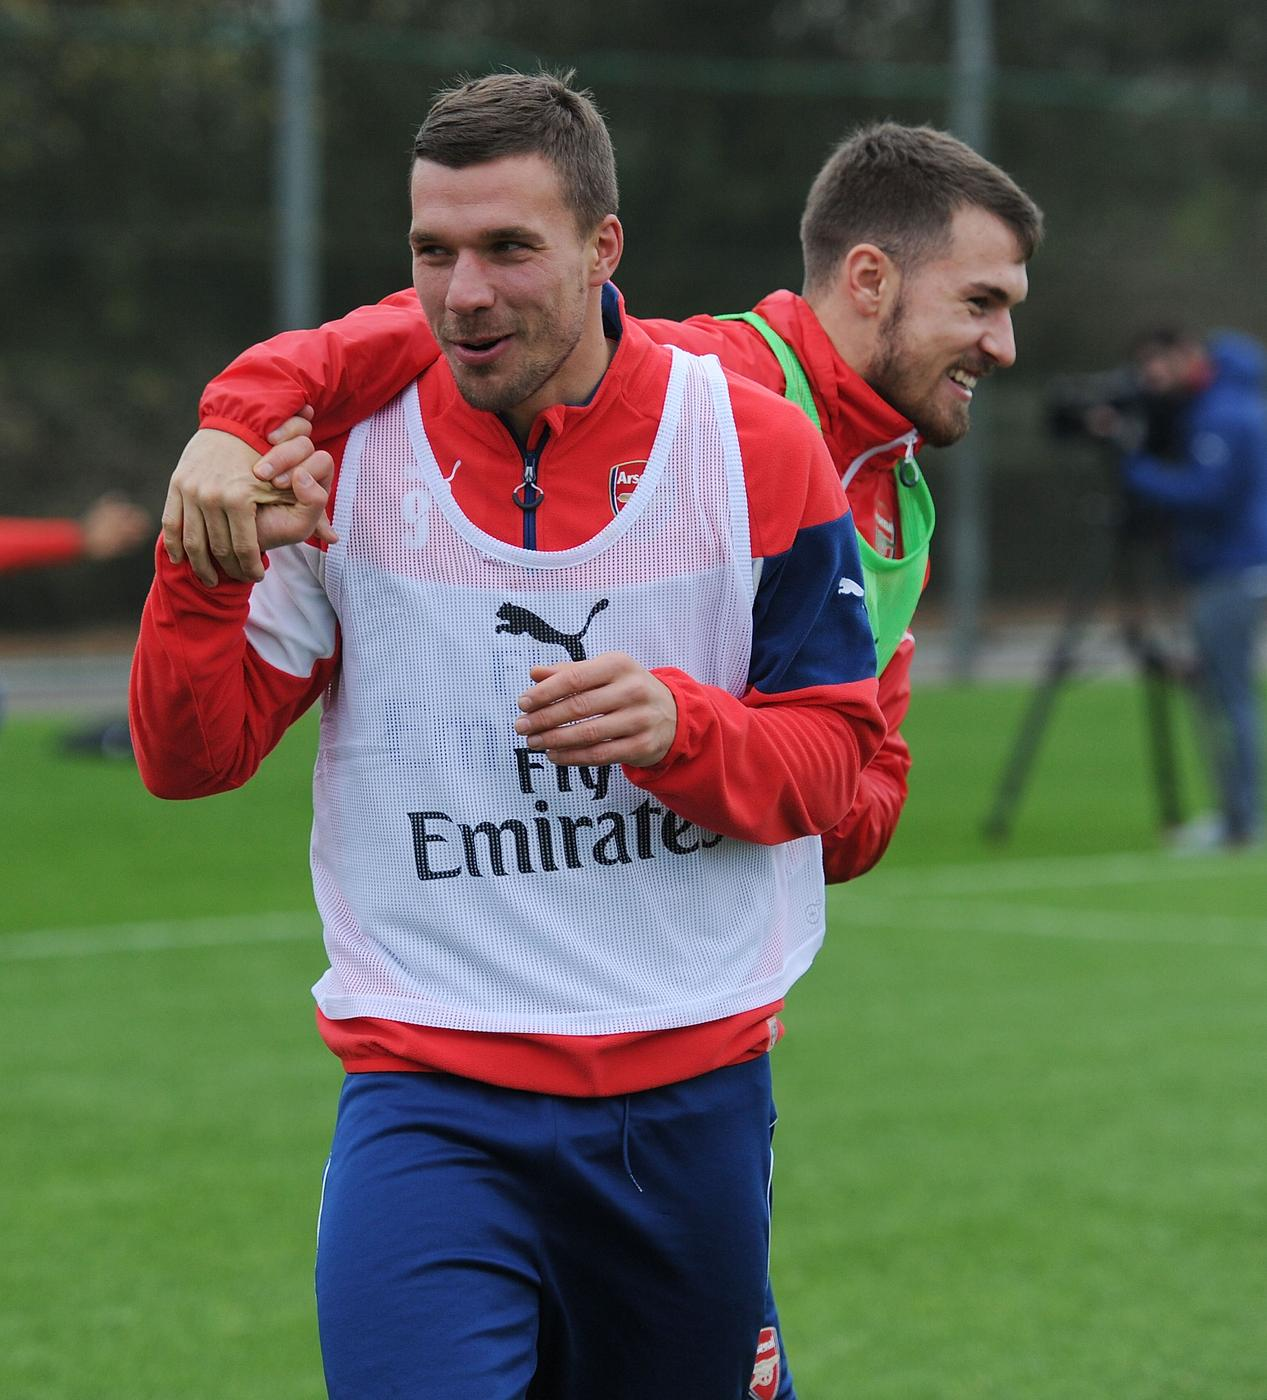 Lukas Podolski nears Arsenal exit after admitting he dreams of Cologne return